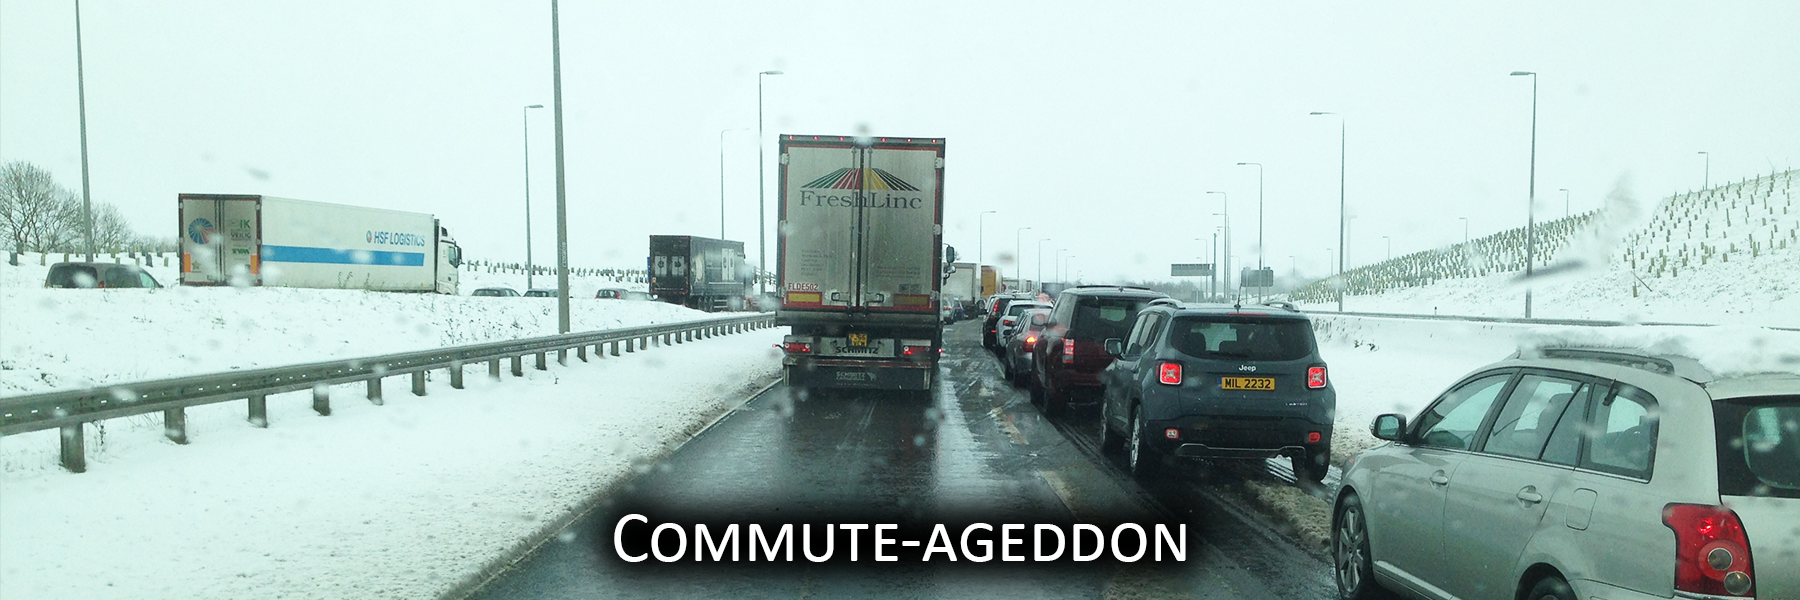 Commute-ageddon